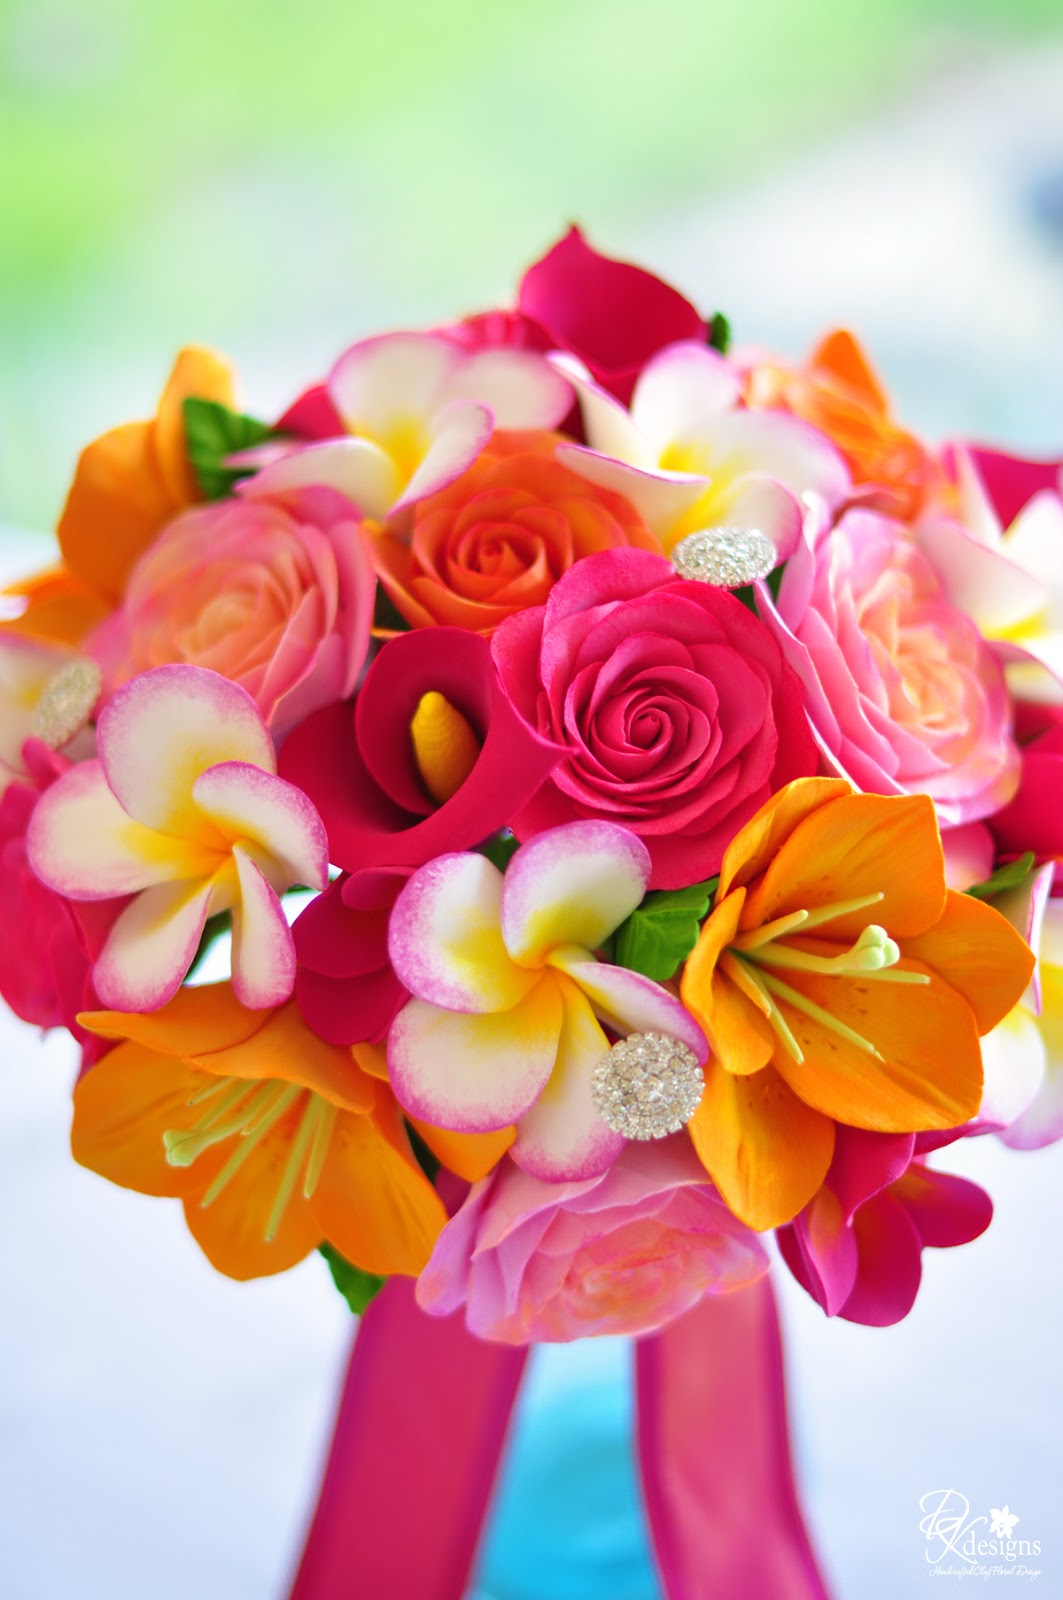 Tropical Wedding Bouquet for a Destination Maui Wedding - DK Designs